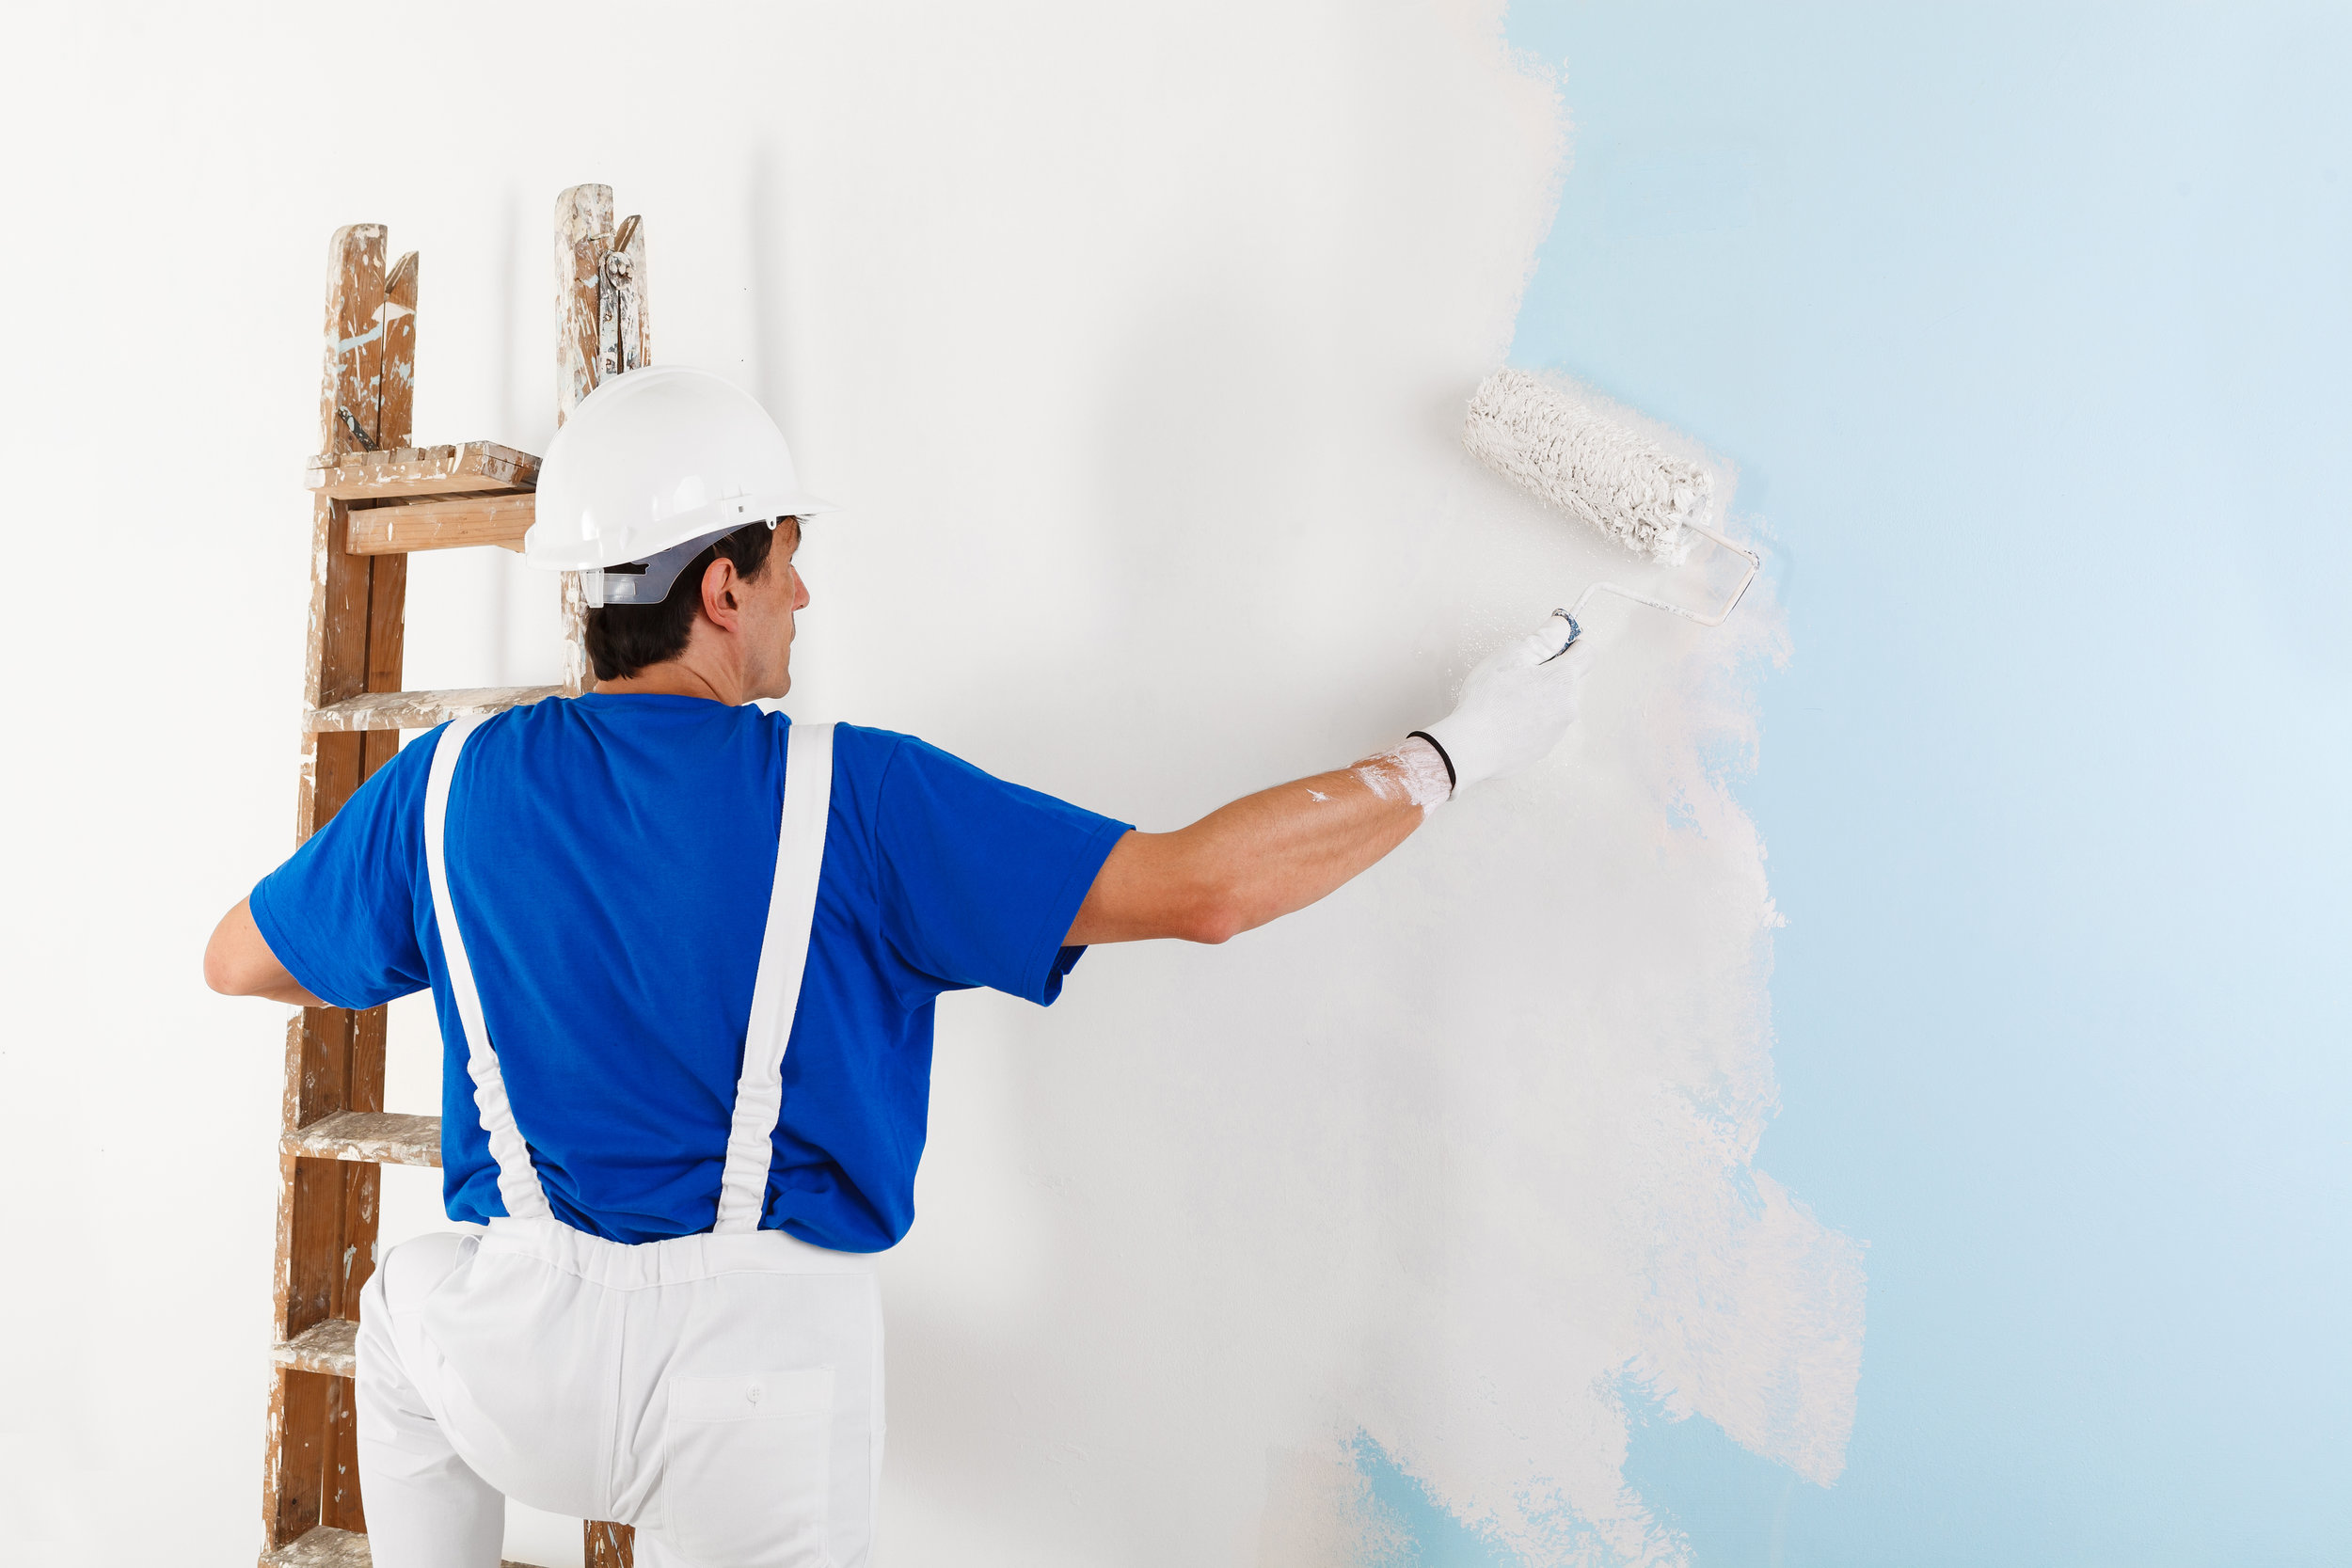 Efficiency. - Our Preferred Professional Painters can guarantee a quicker, higher-quality and more accurate paint job than you could do yourself. Save time and keep your sanity! Our painters know the best and fastest ways to prepare walls before painting - removing wallpaper, refinishing plaster, sanding, spackling, and priming for the best results.